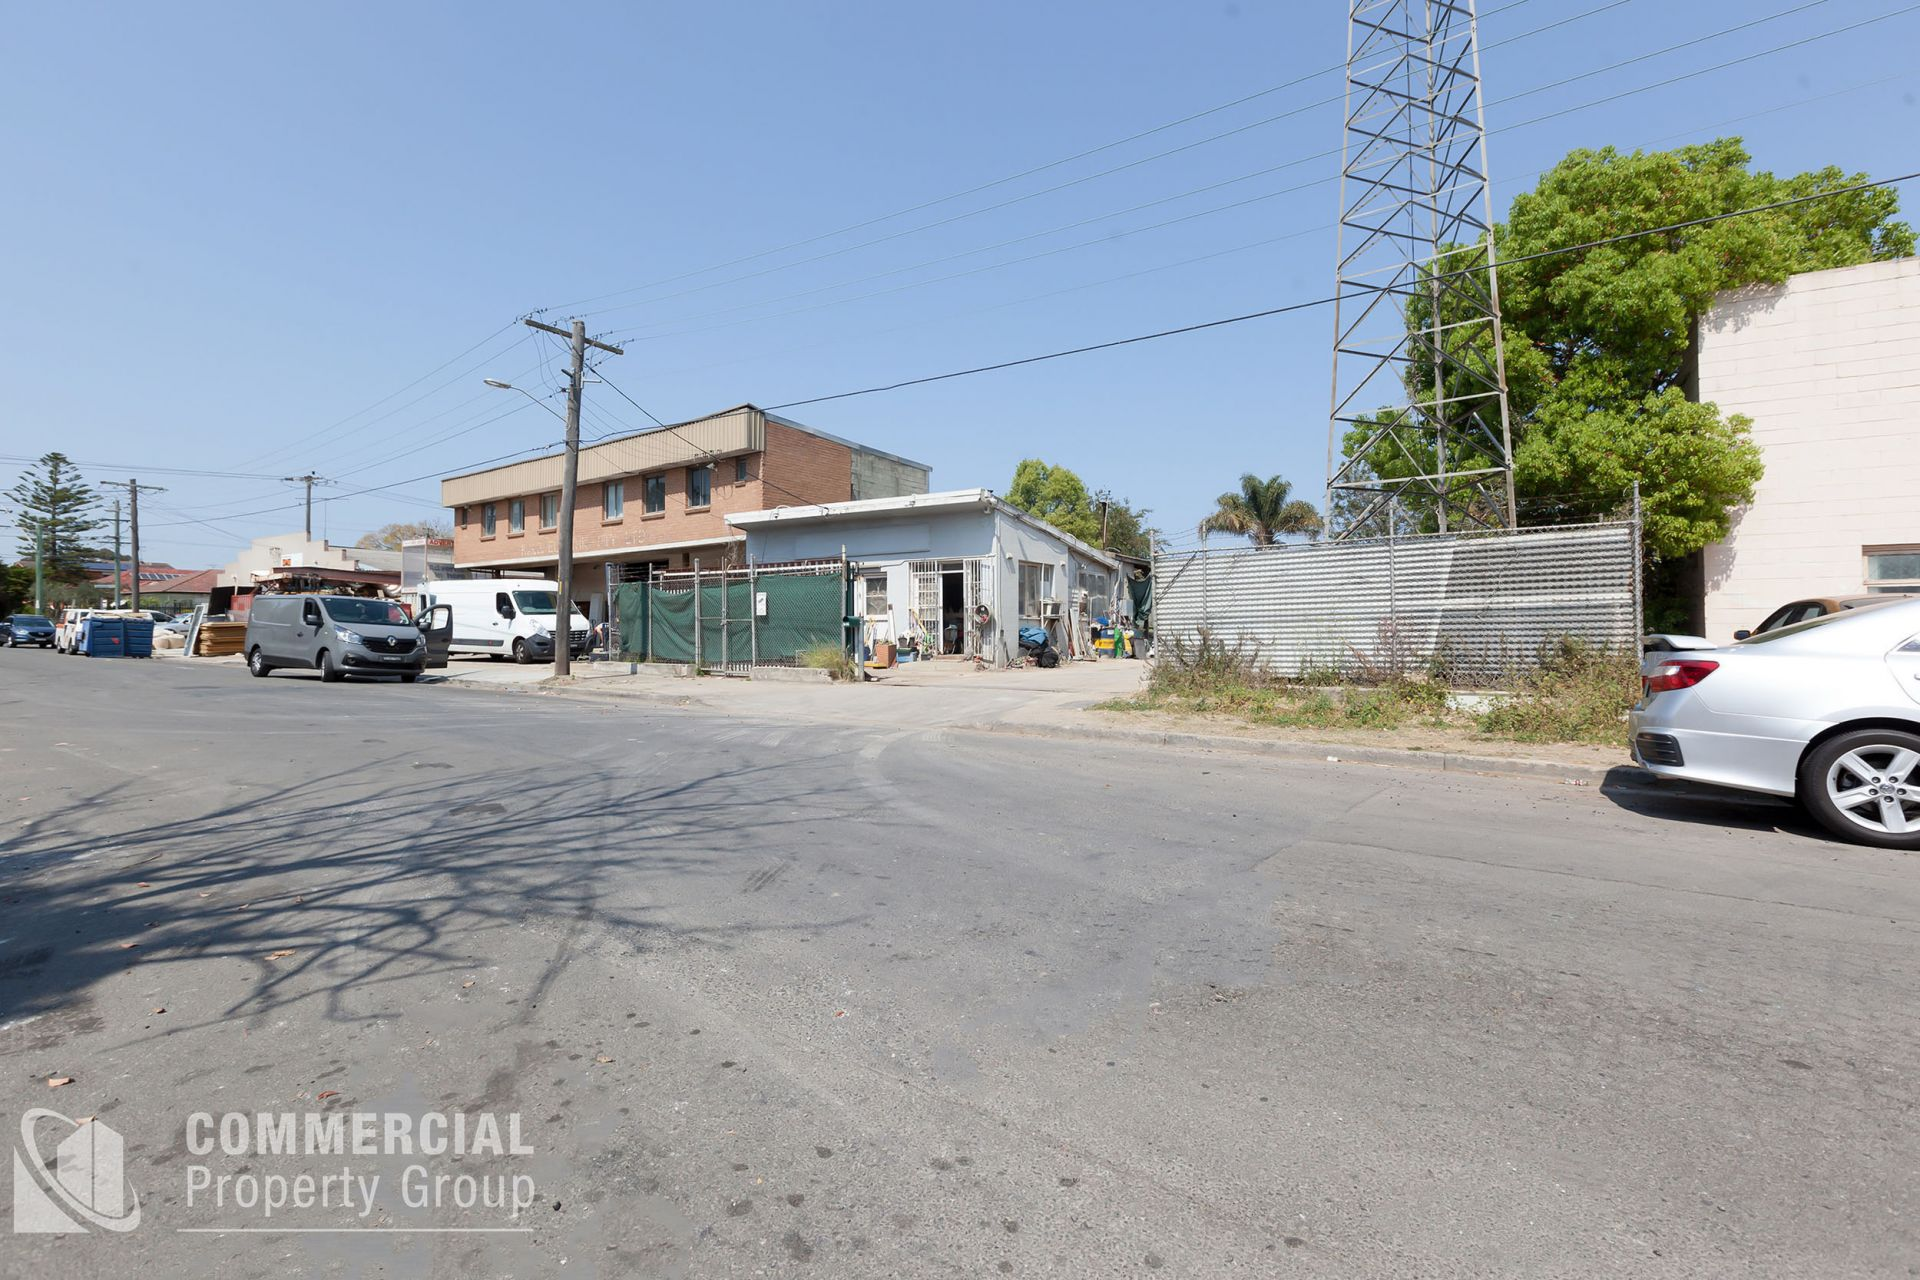 SECURE YARD & OFFICE BUILDING FOR LEASE